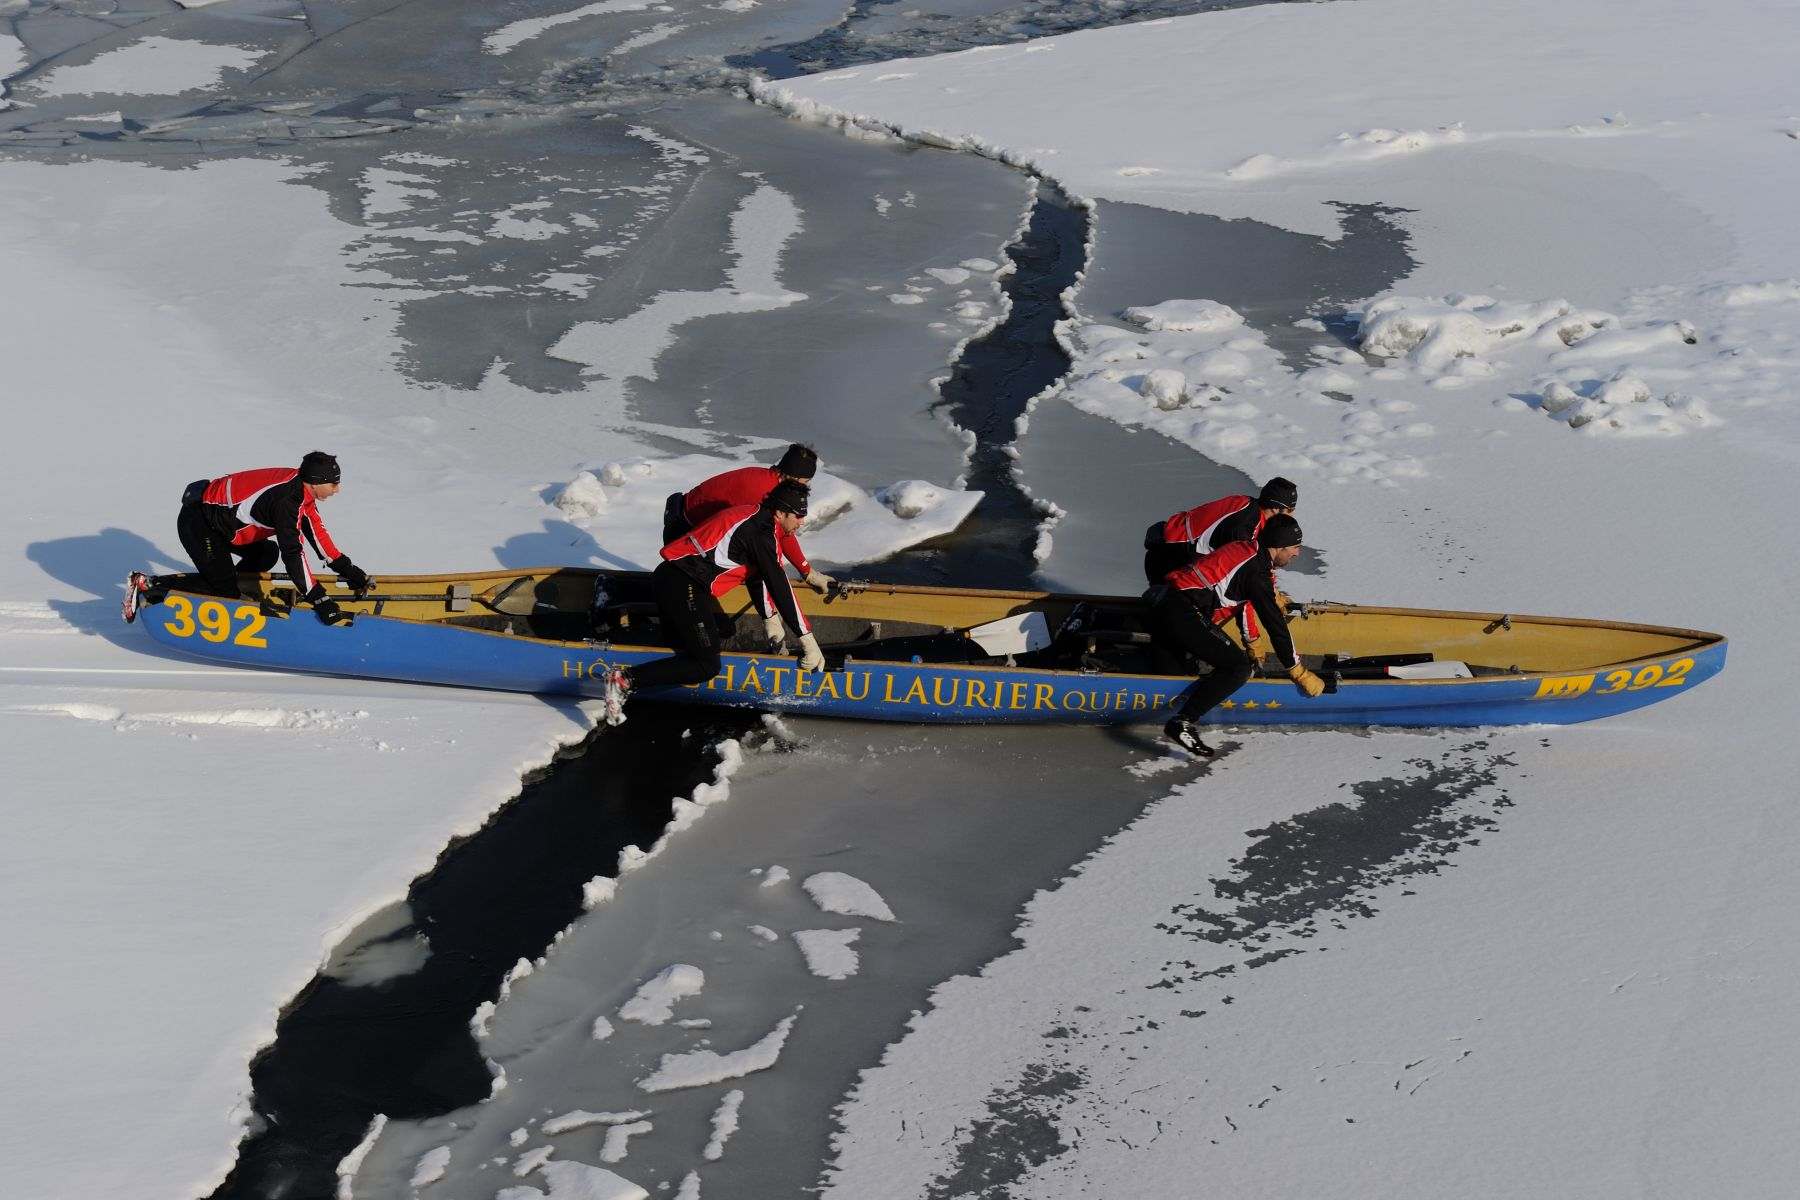 The canoe race on the frozen St. Lawrence River is one of the most popular events at Québec's Winter Carnival.